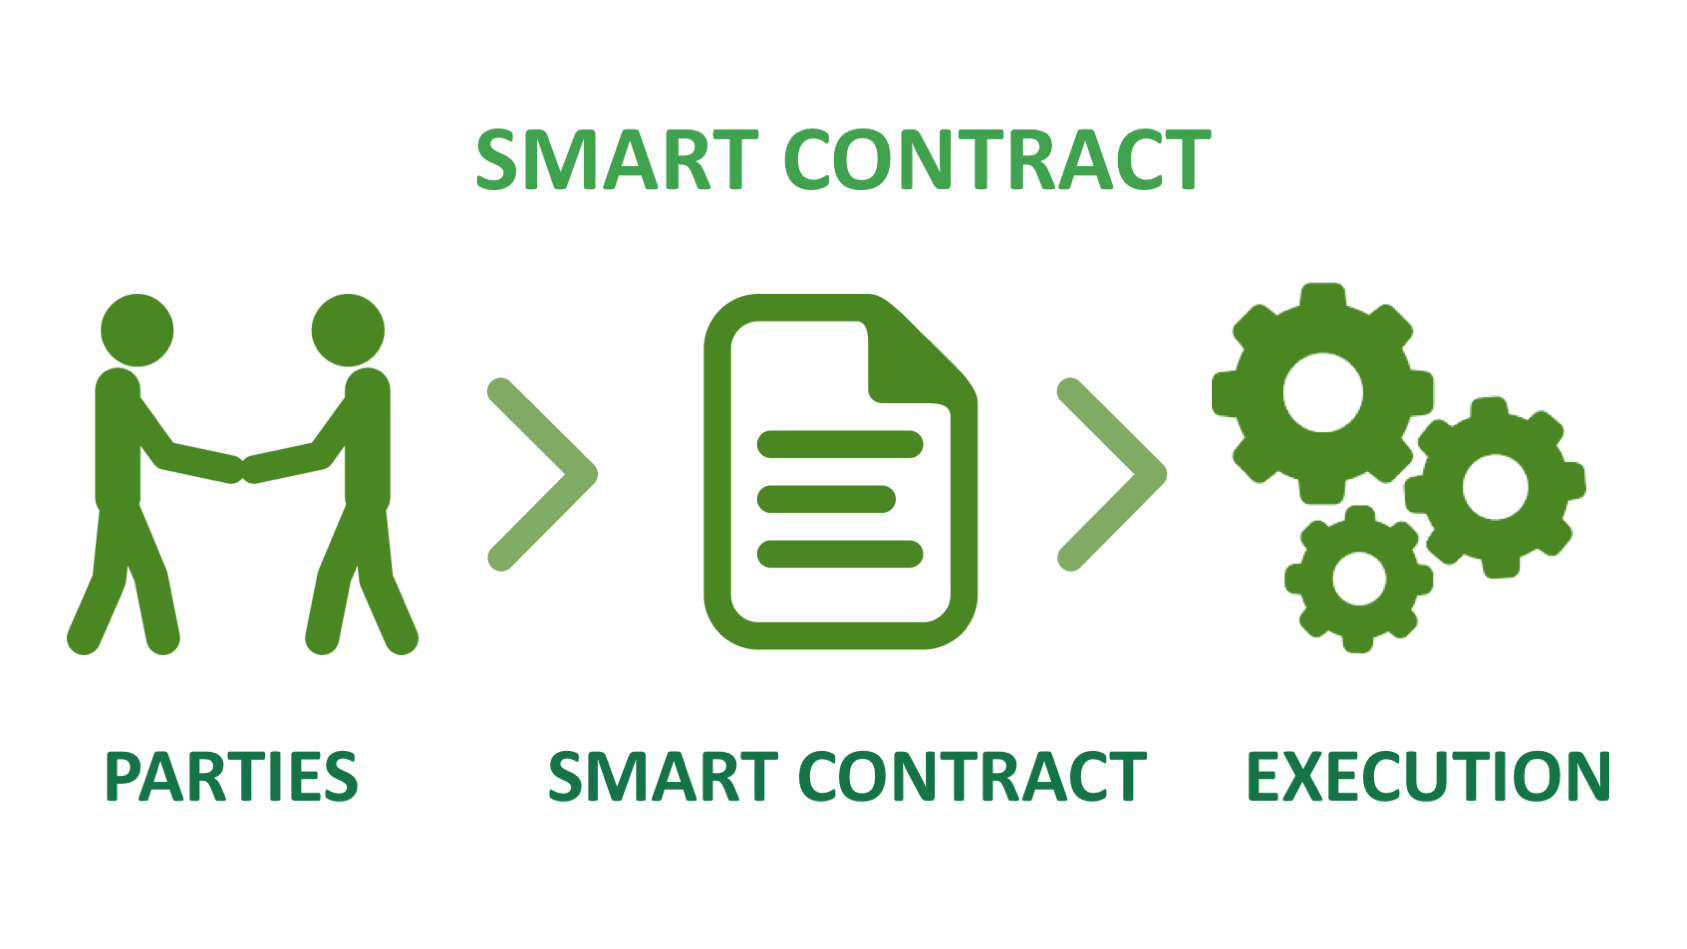 smart contracts in blockсhain in comparison to the ordinary contracts image 2